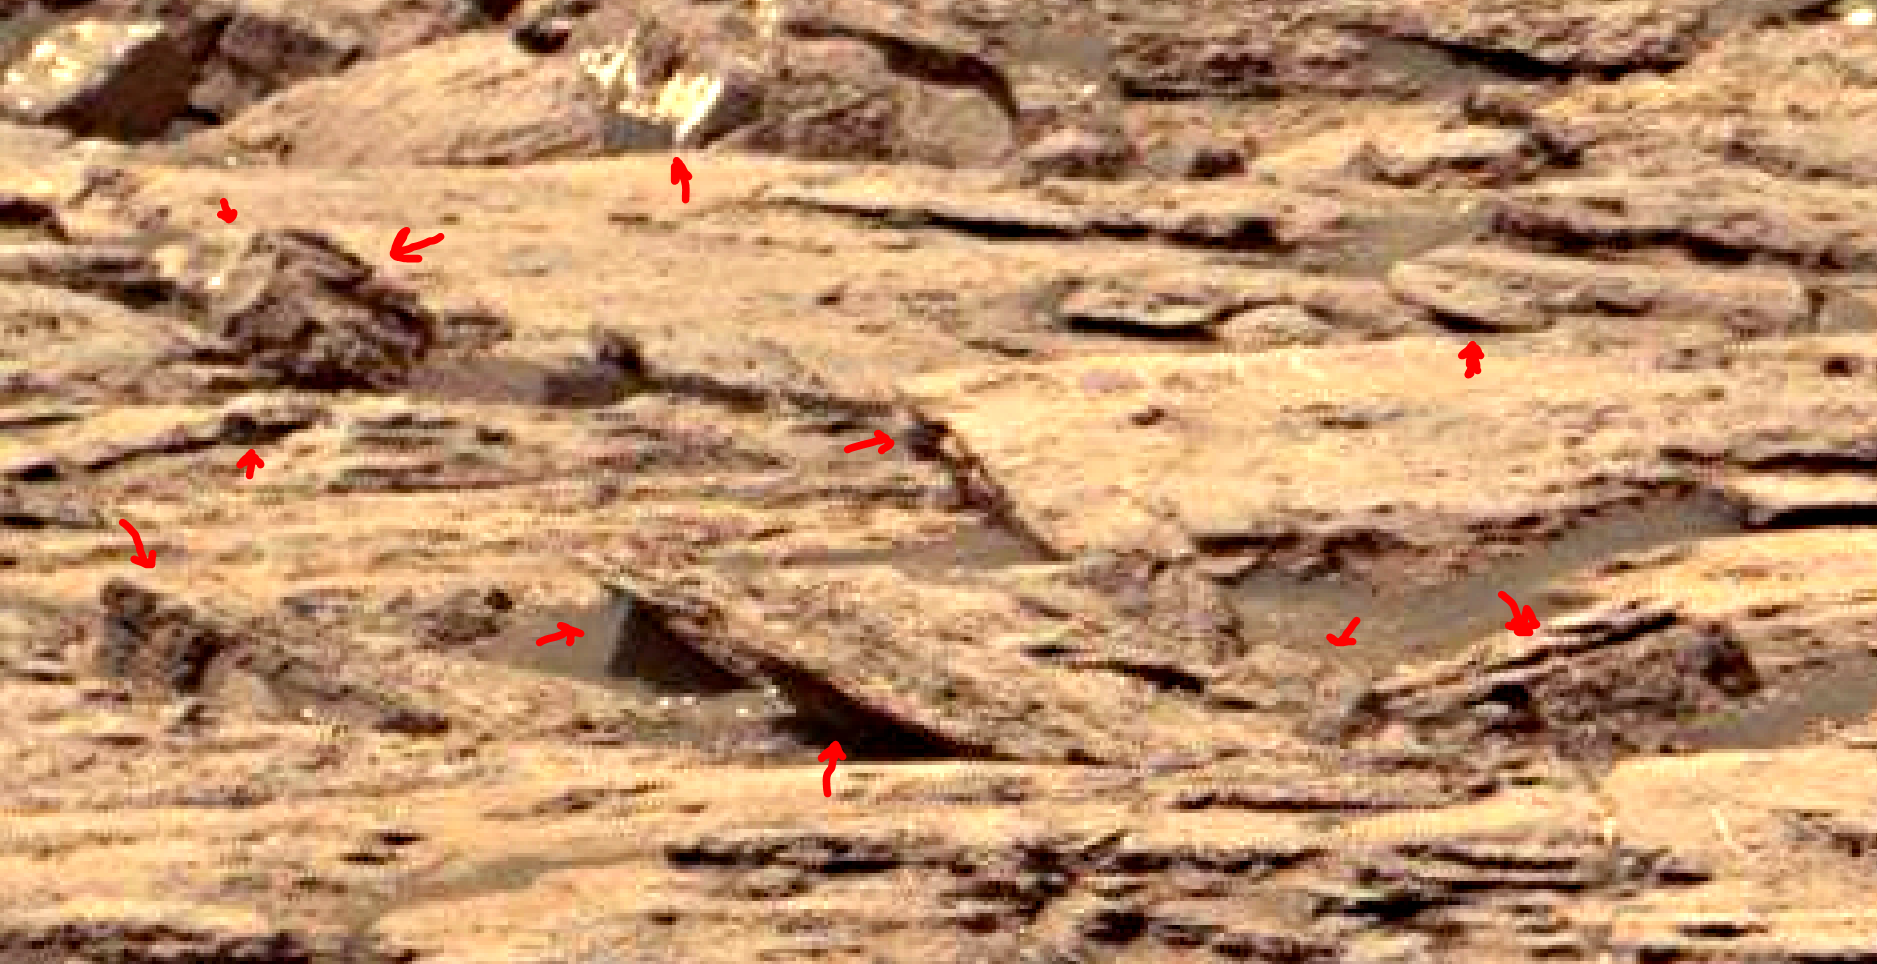 mars-sol-1493-anomaly-artifacts-7-was-life-on-mars